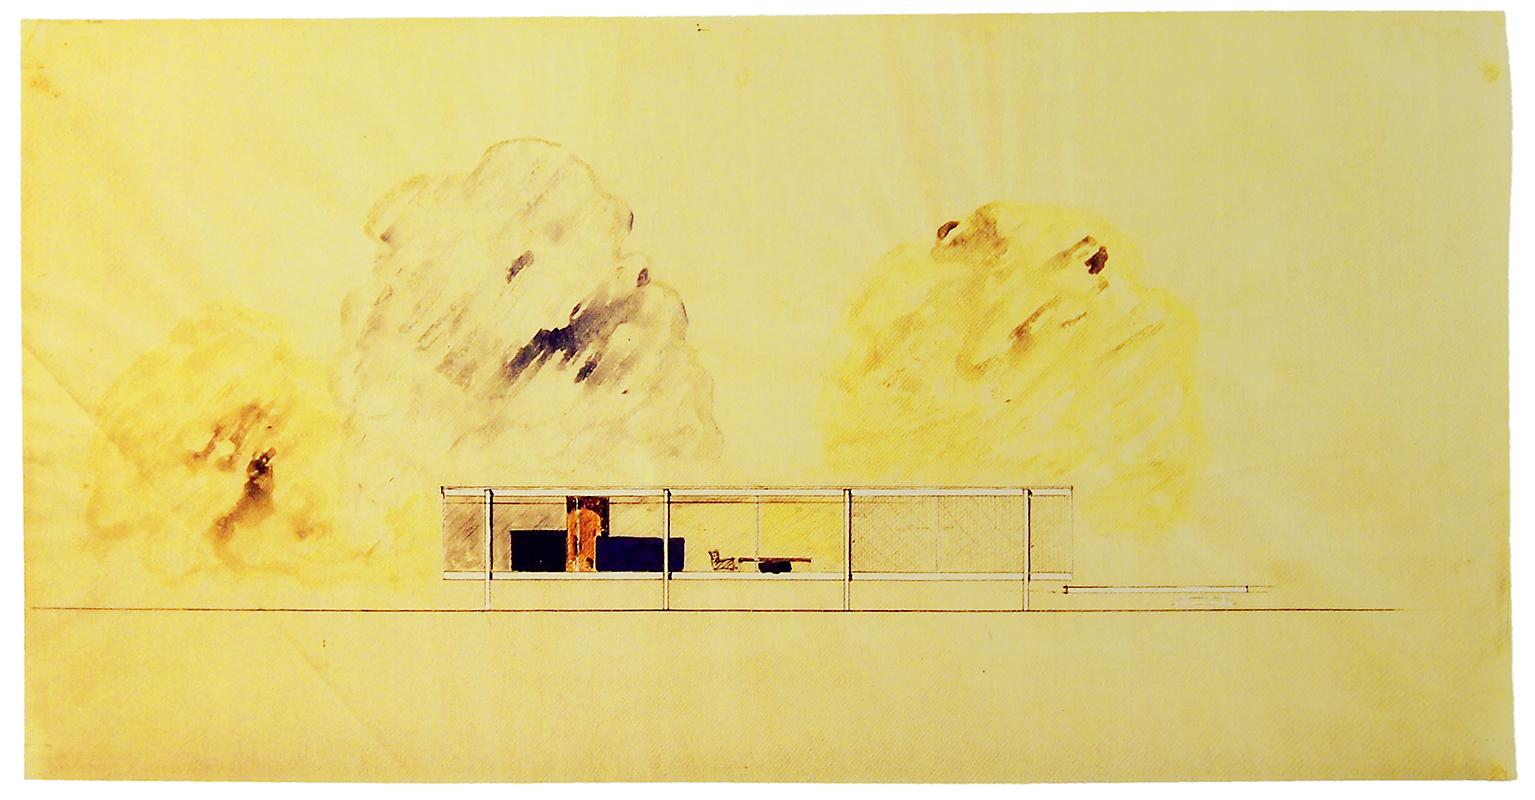 Mies van der Rohe. Envisioning Architecture (MoMA, New York, 2002) 1945, 98